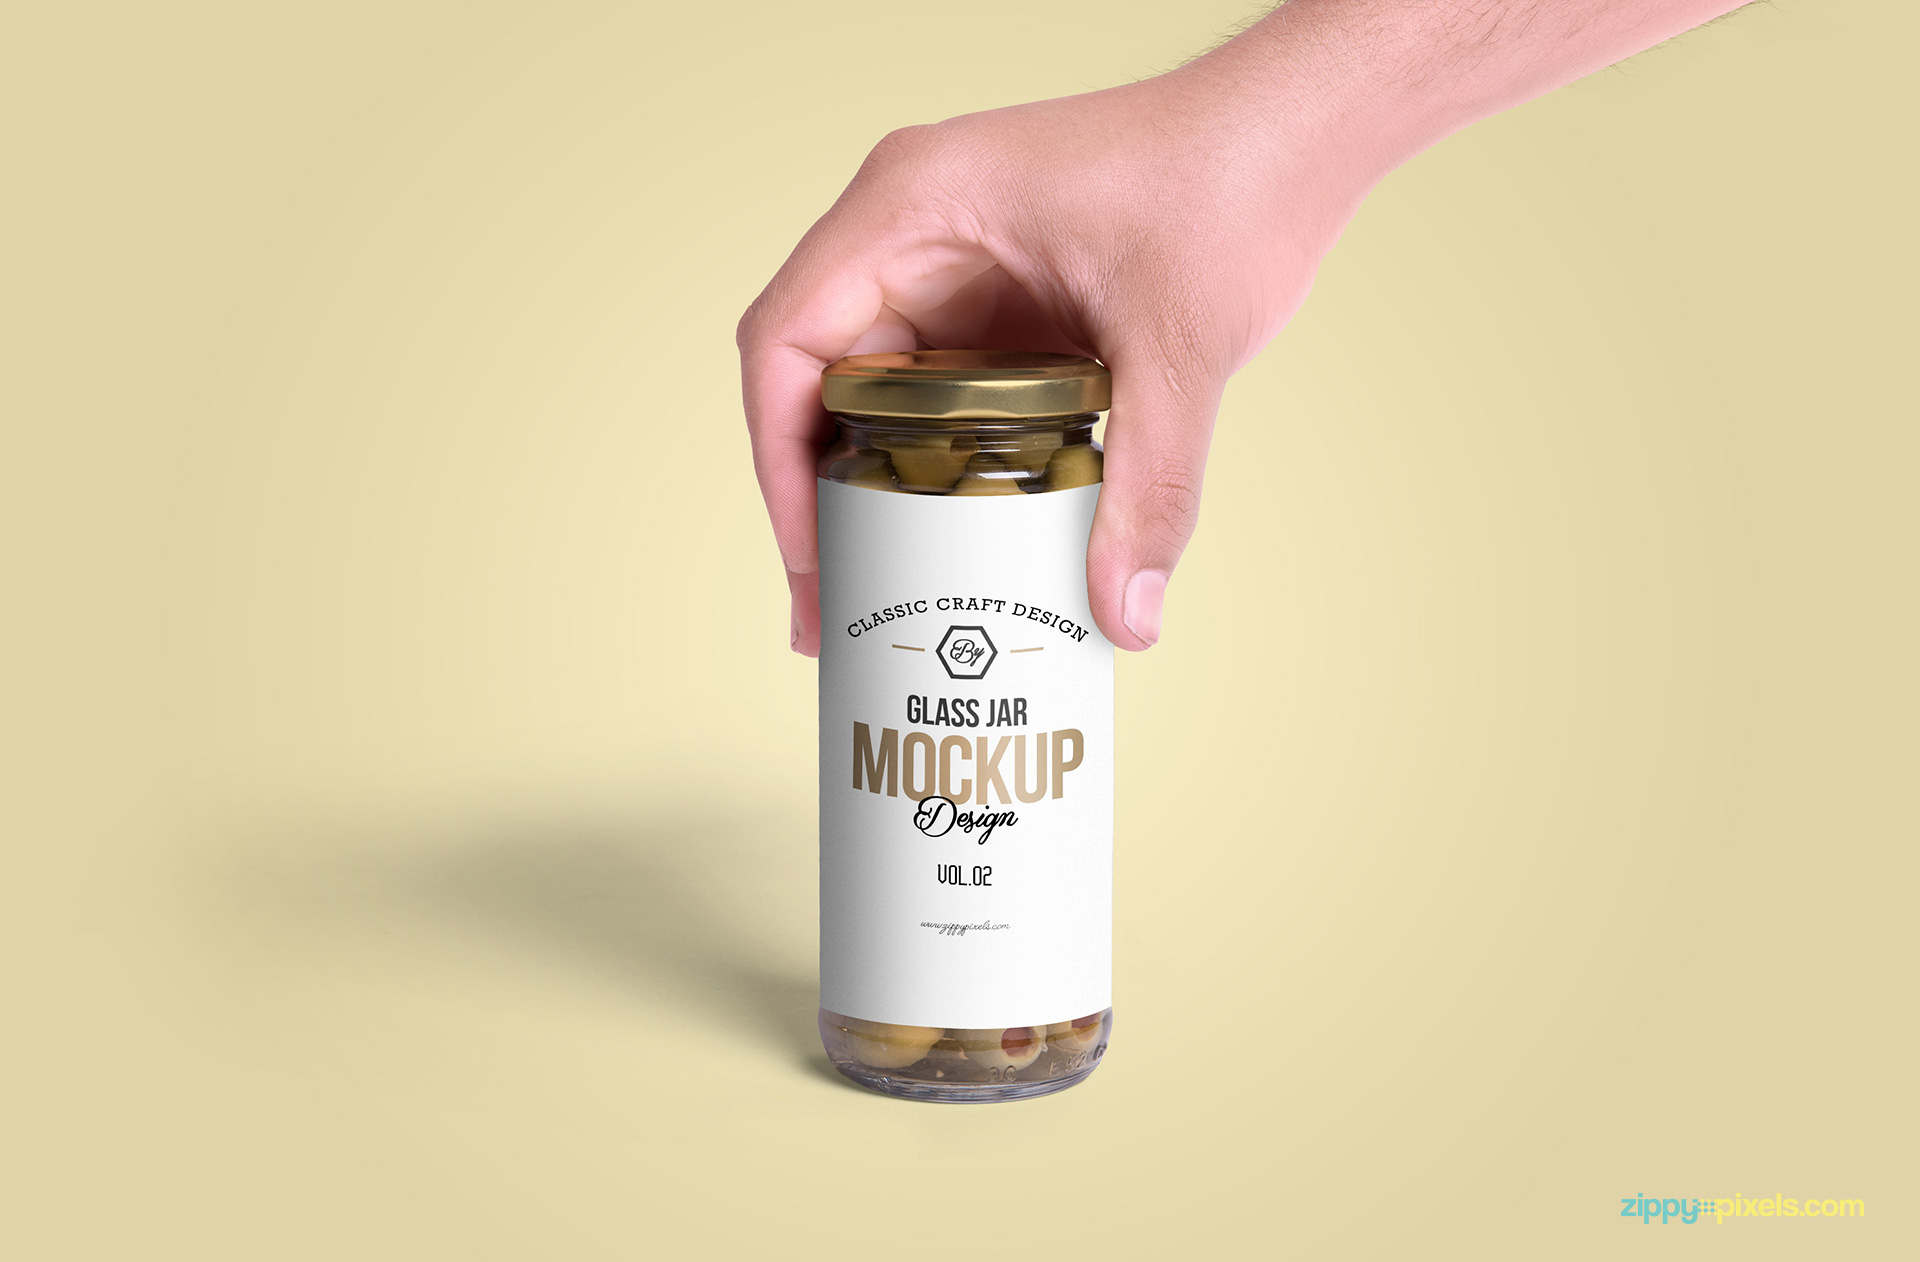 glass-jar-mocku-up-with-hand